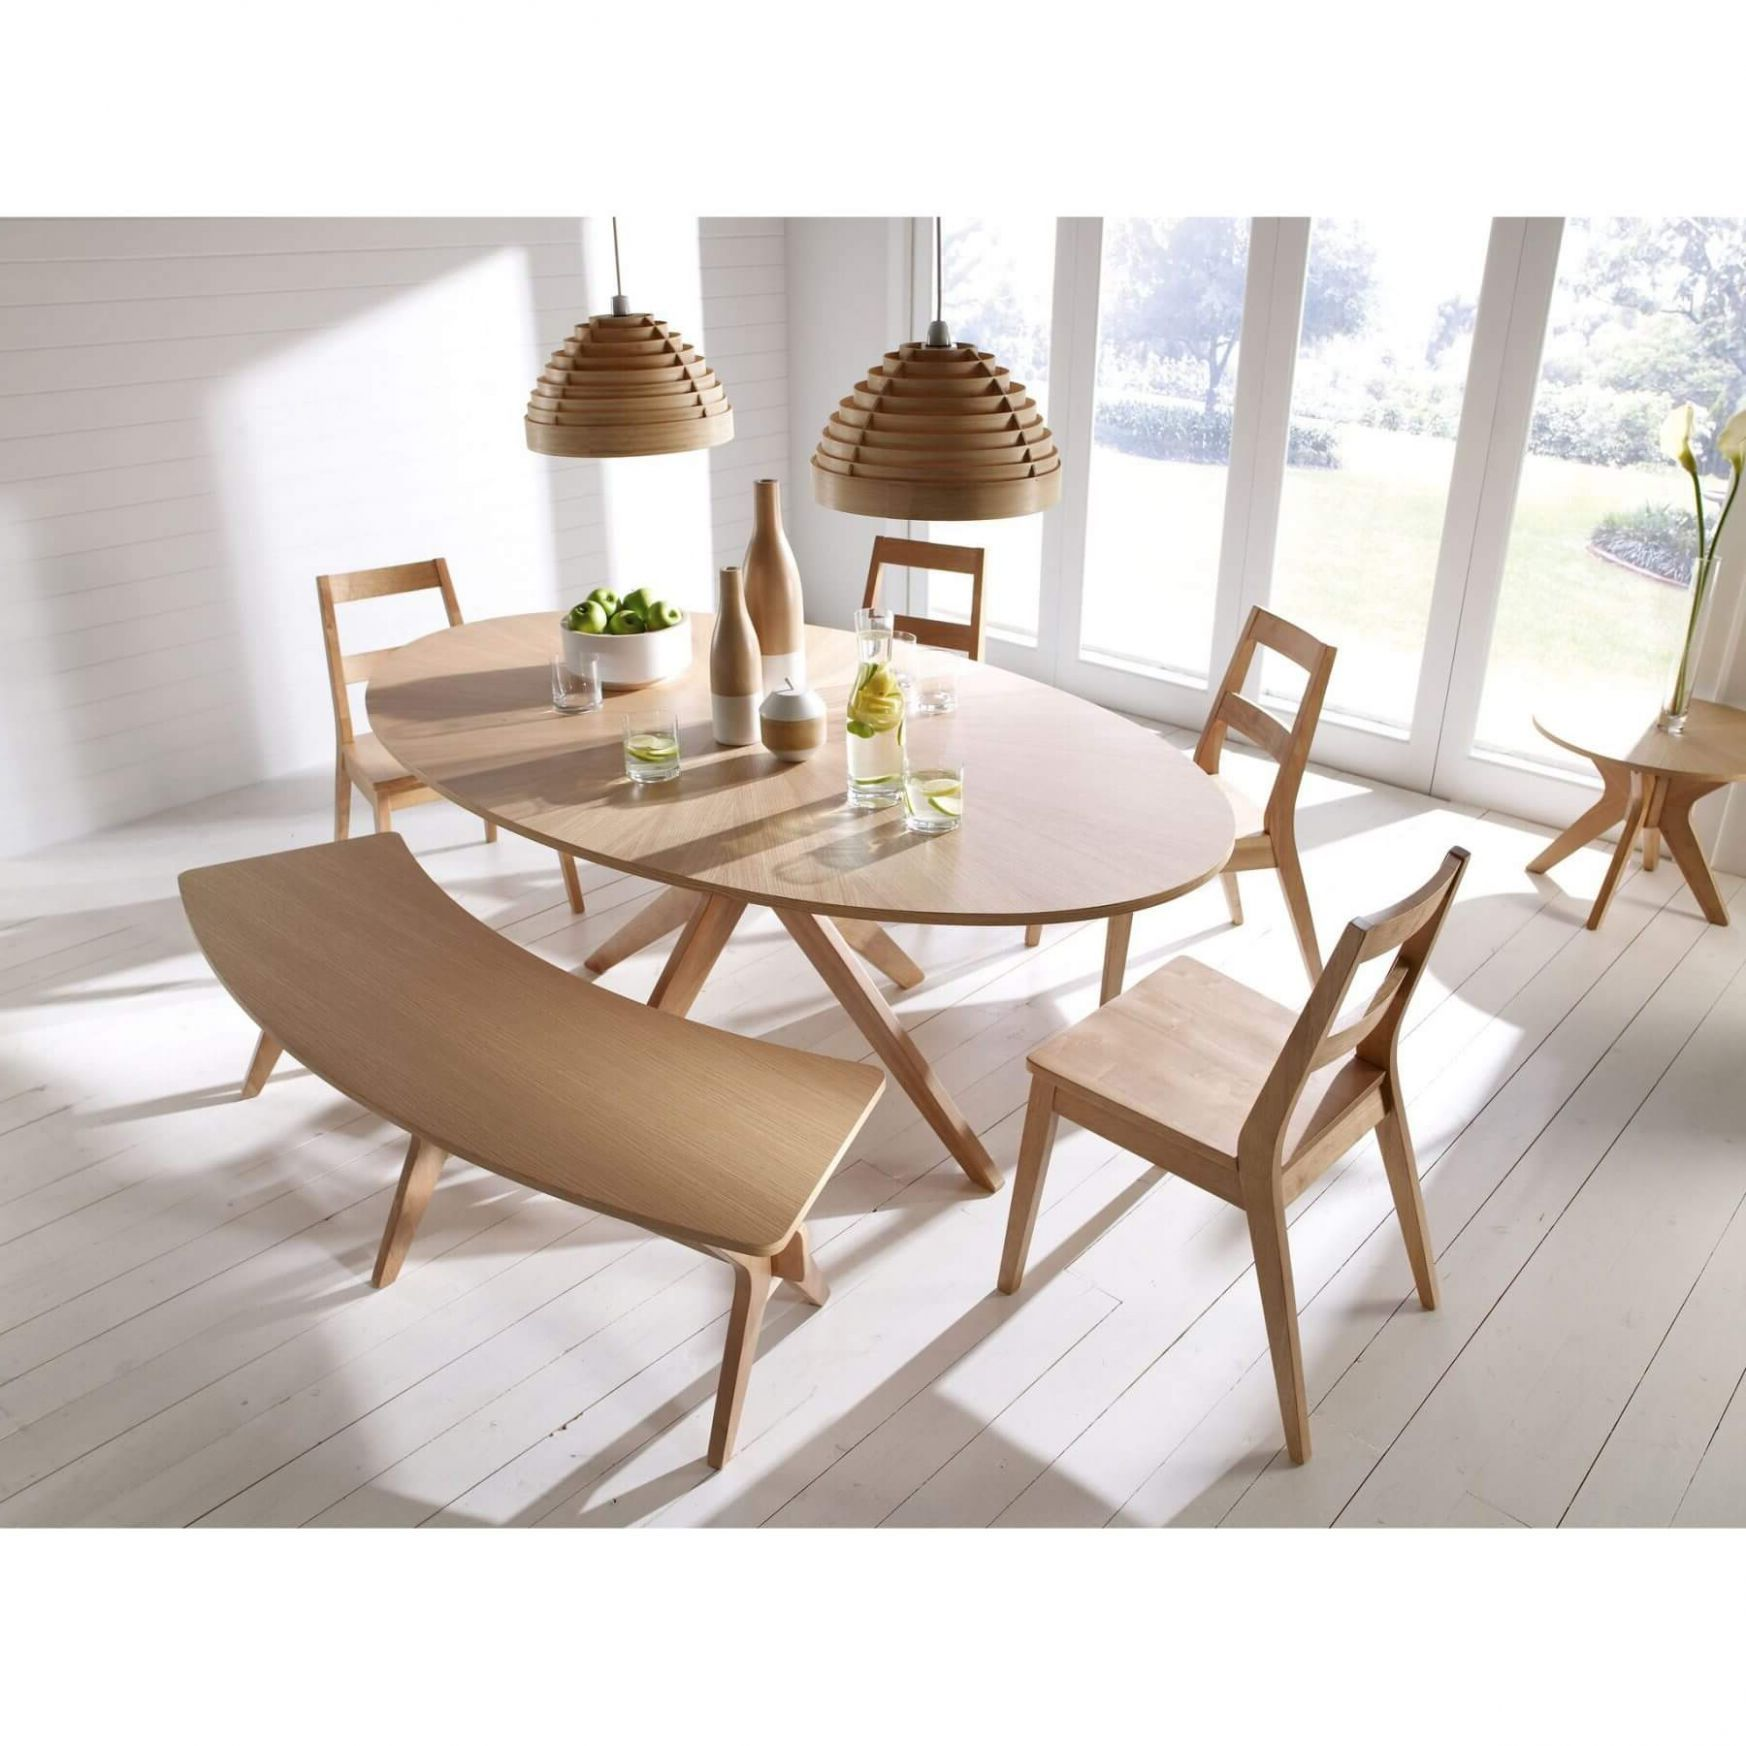 Circa Ii Oval Dining Table With Extension Mechanism Open 1 5m Wide